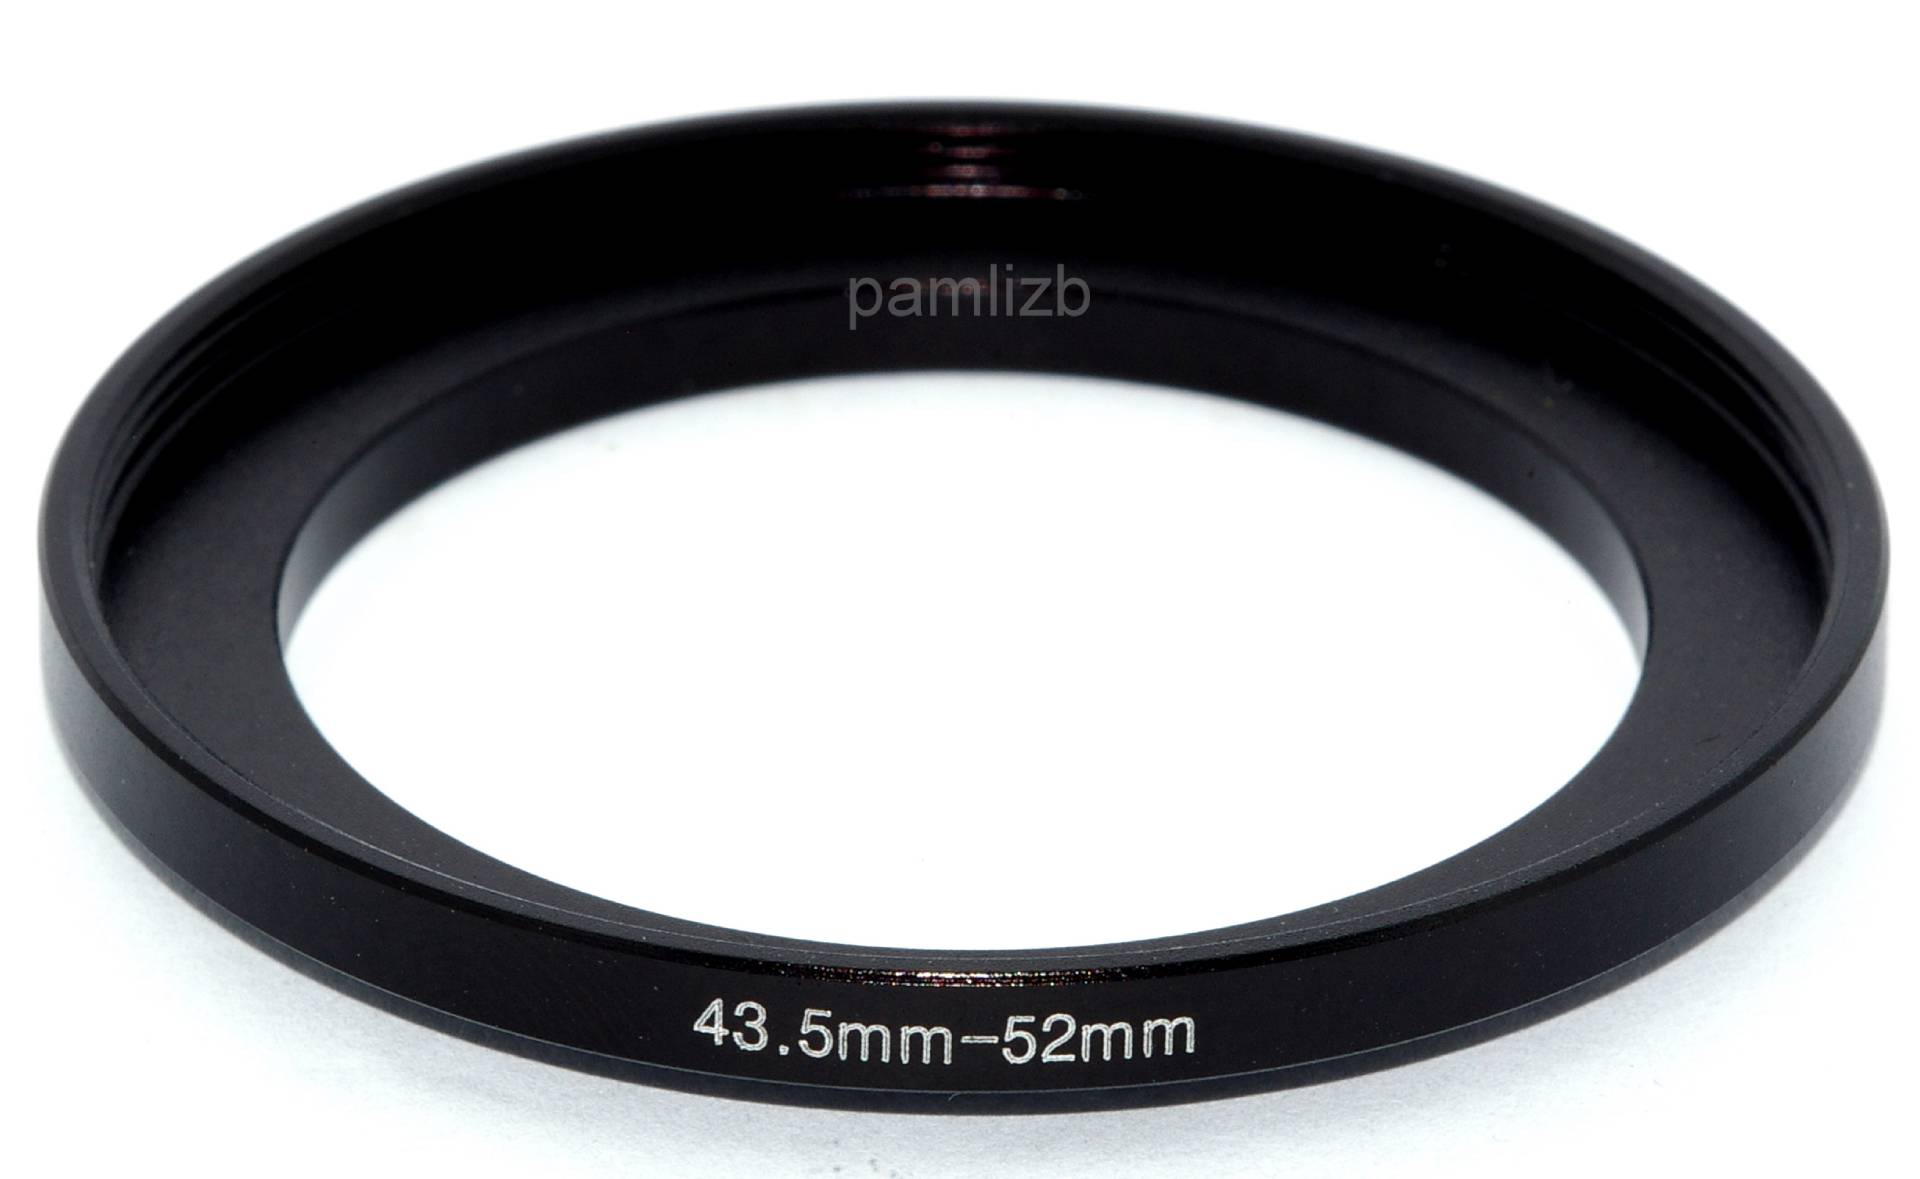 43-5mm-52mm-camera-lens-Filter-stepping-adapter-ring-43-5-52-mm